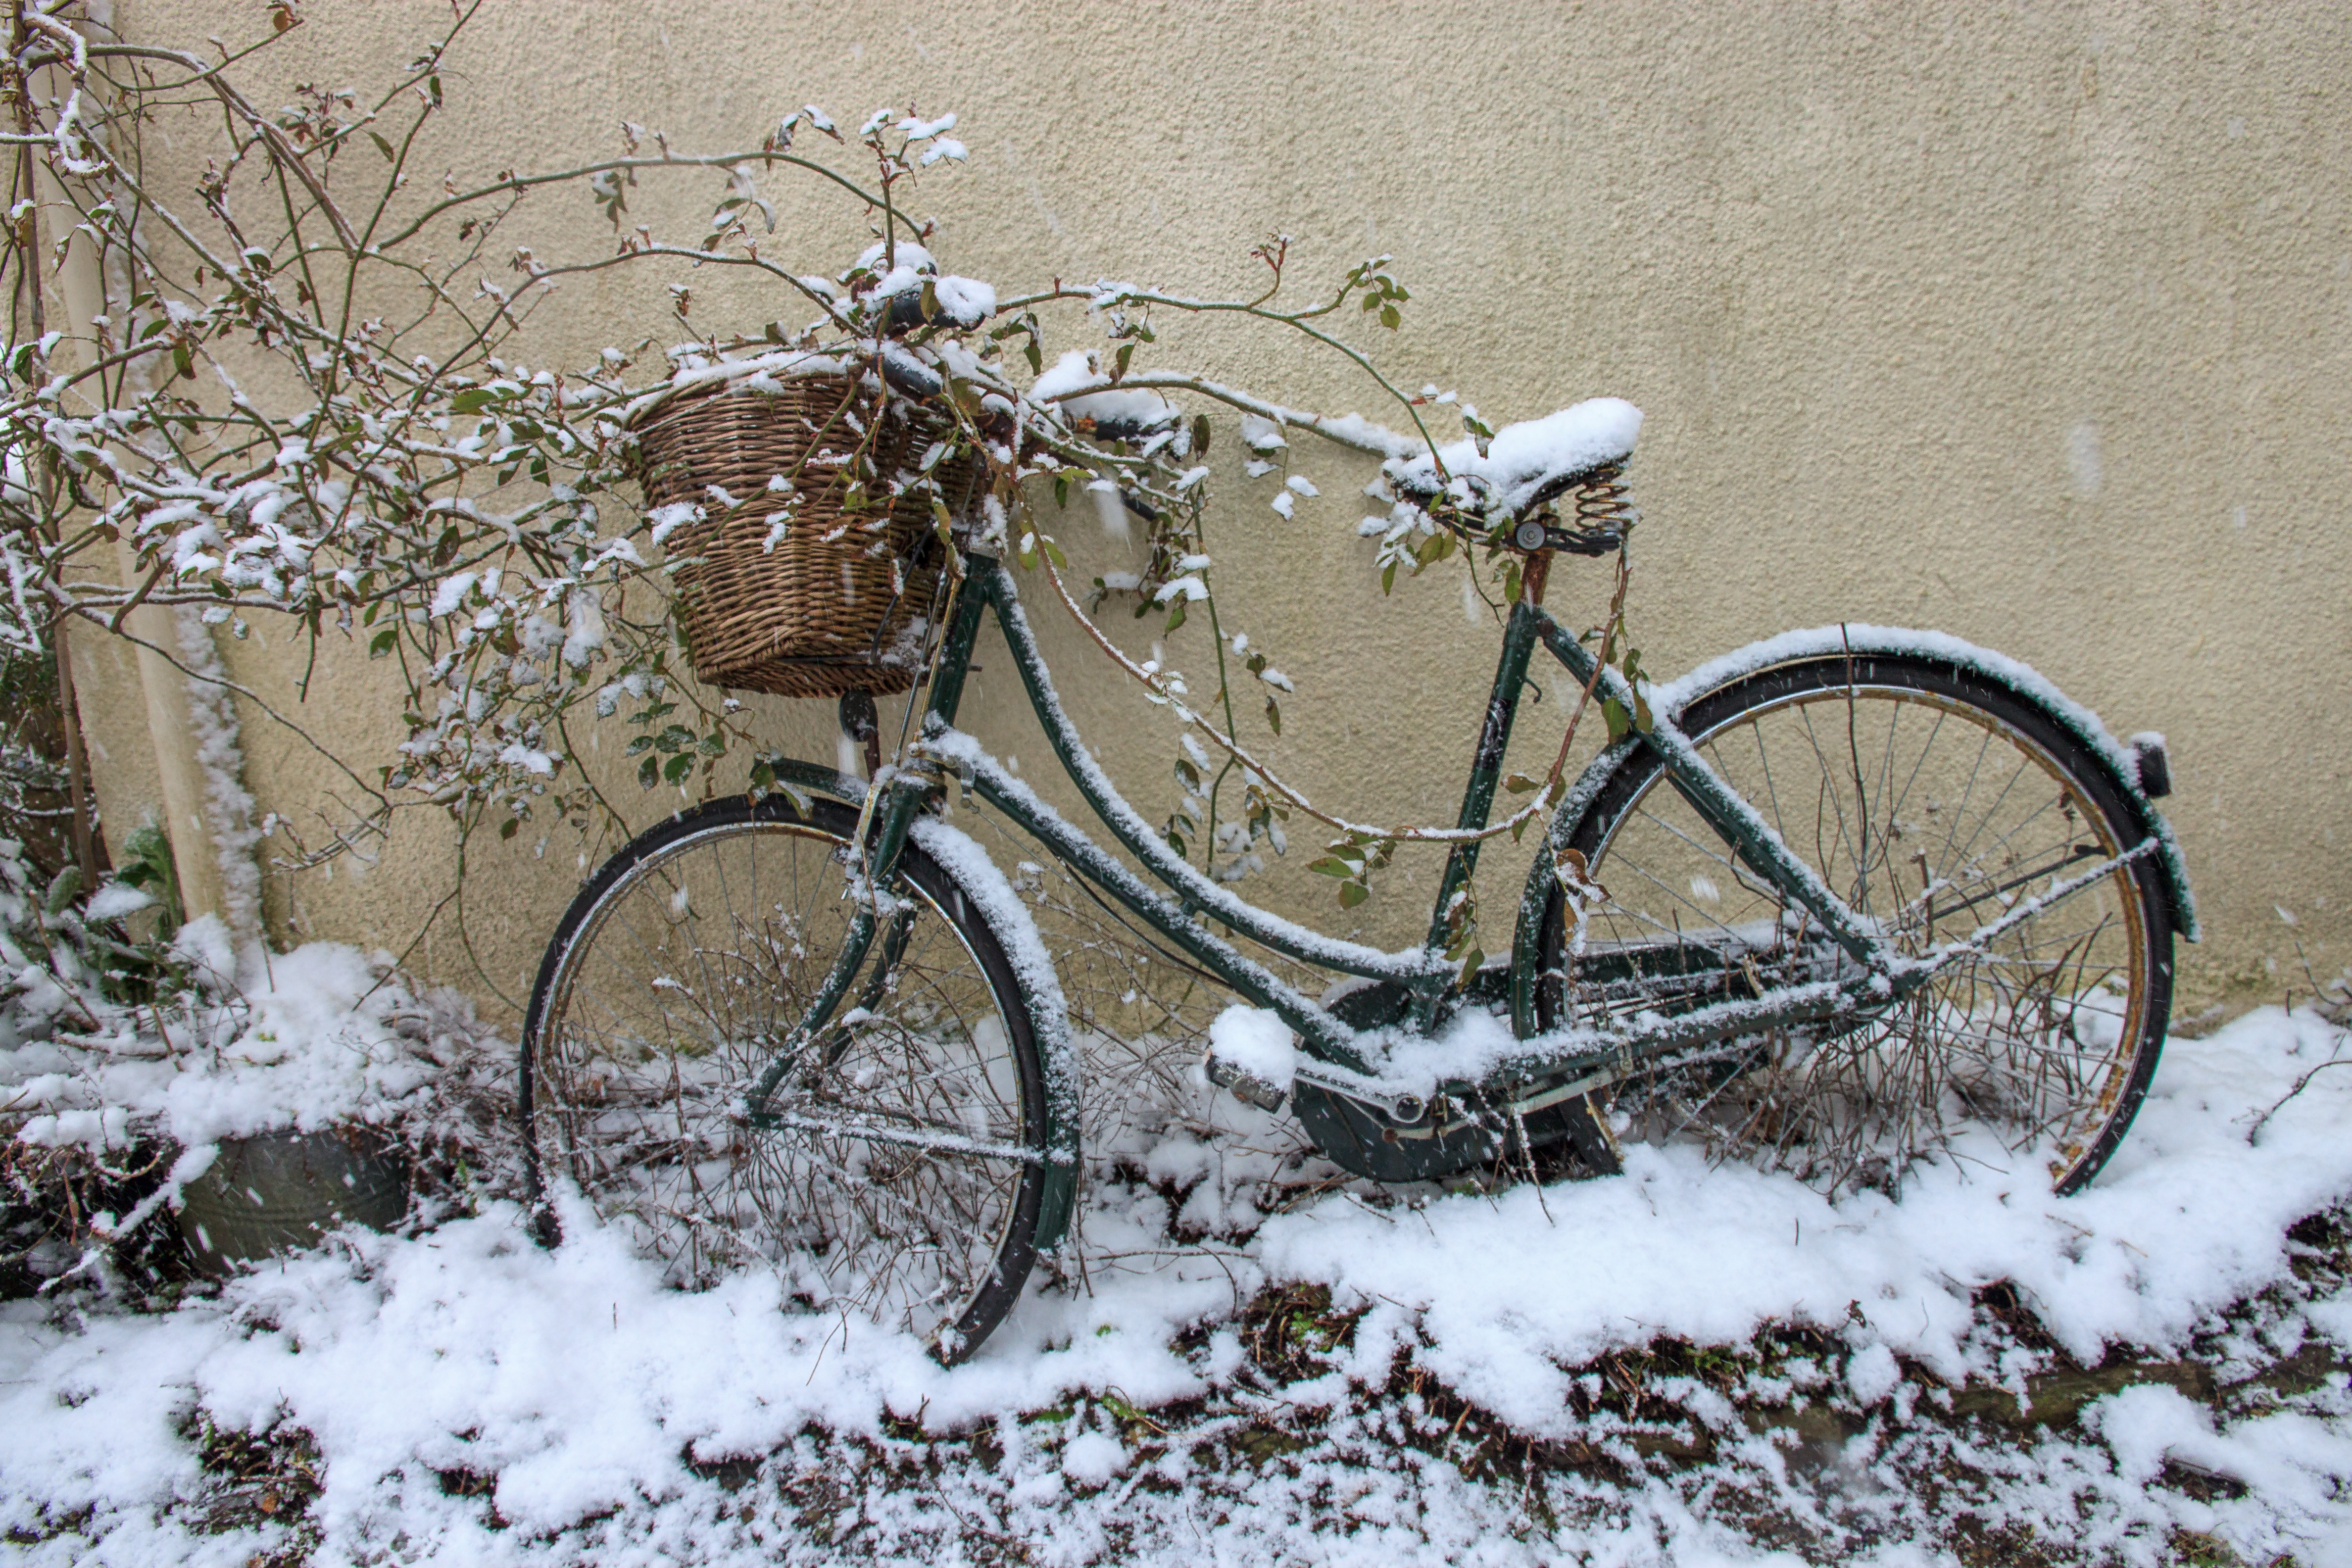 Bicycle in the snow. Georgeham March 2018